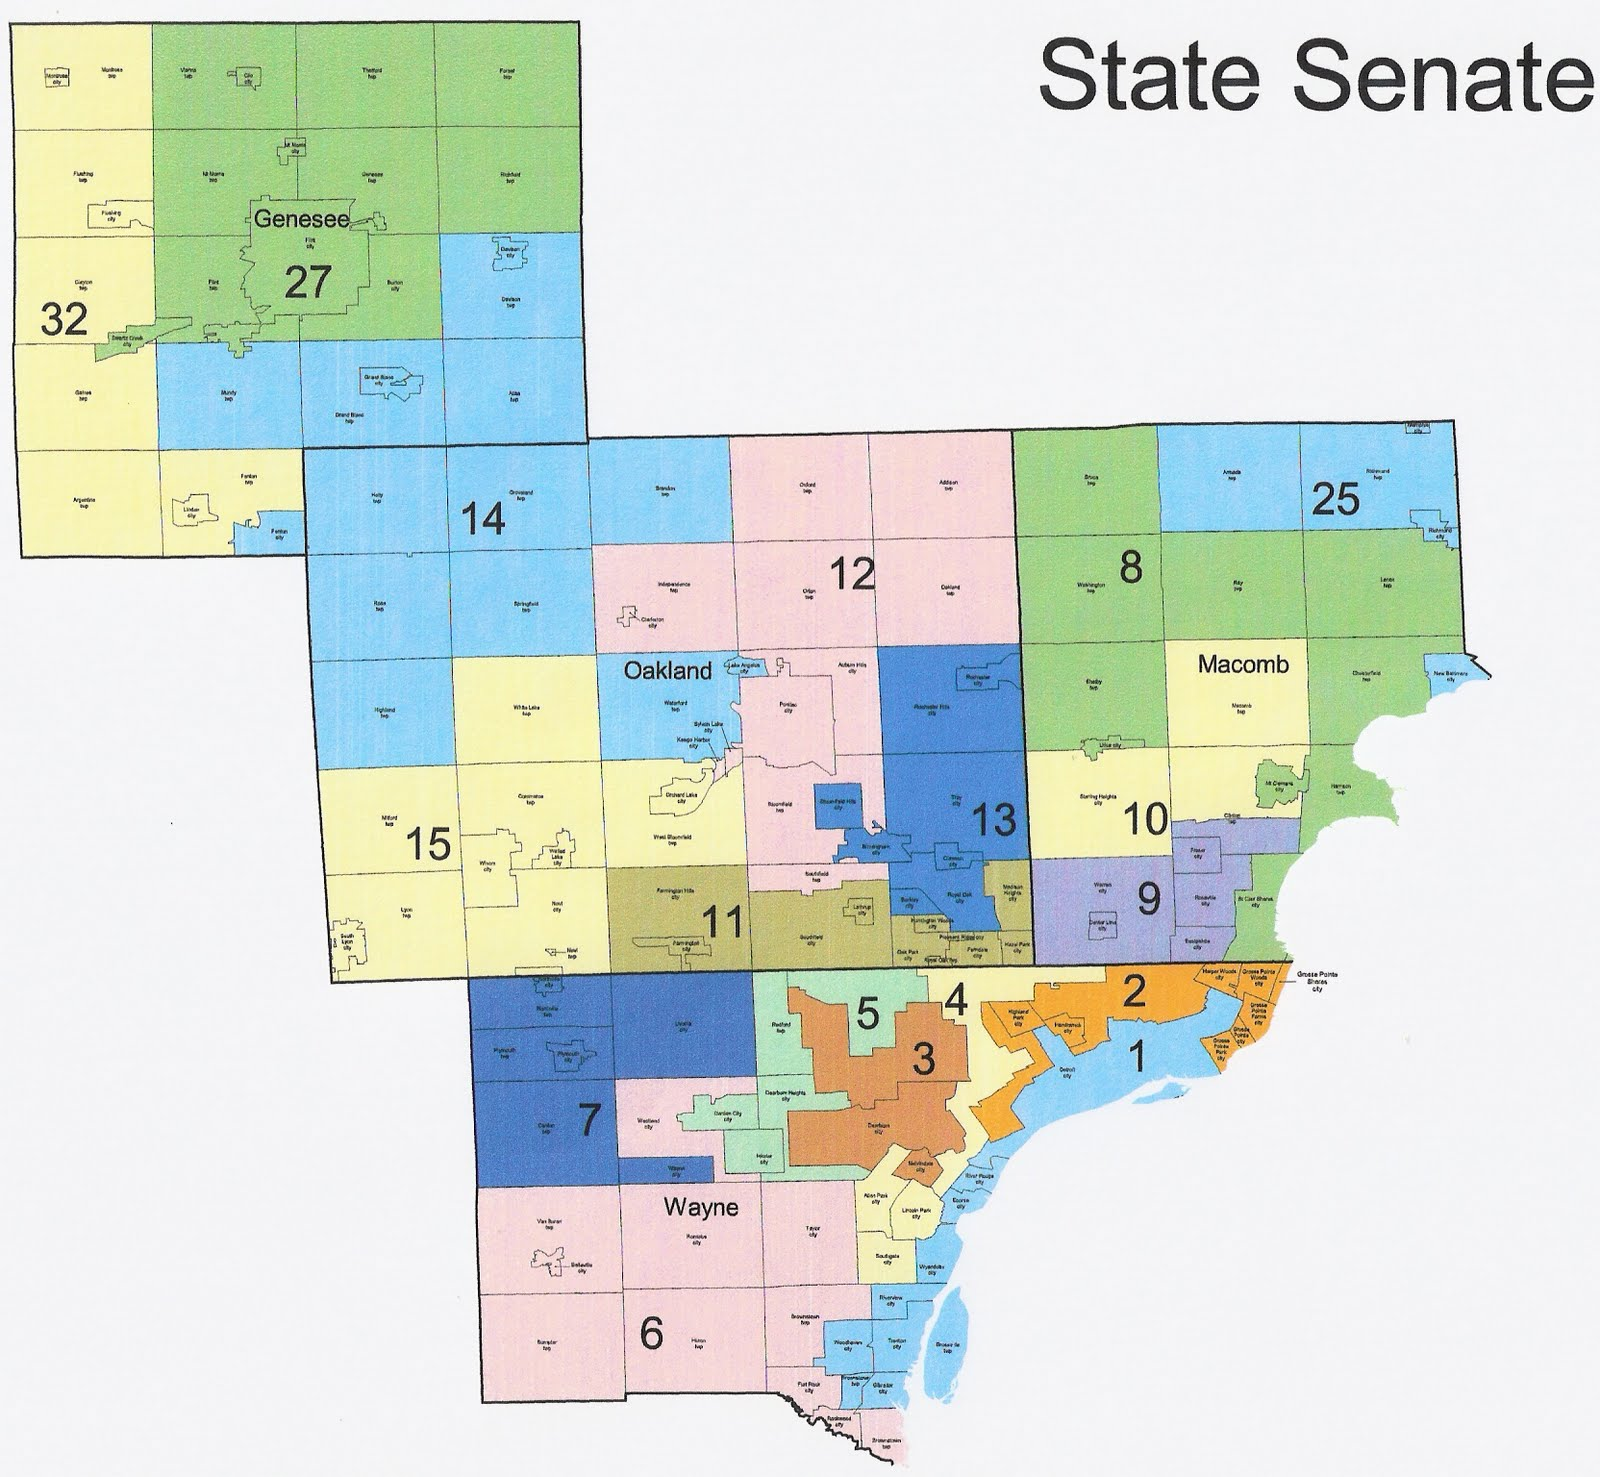 Michigan Redistricting Republican State Senate Map Passed Rrh